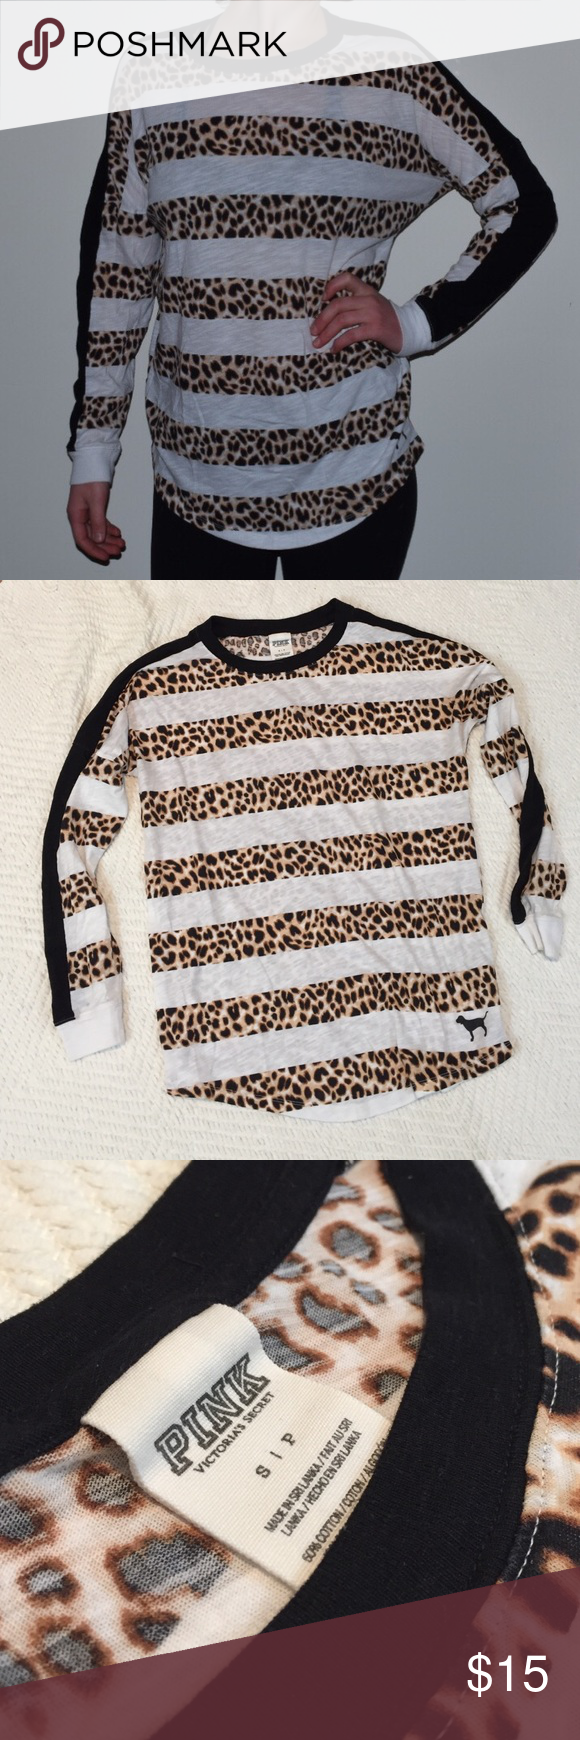 💖VS Pink Long Sleeve Tee Cheetah Stripe Small💖 Long sleeve tee from Victoria's Secret Pink. Put cheetah spots and stripes with long black stripes down the arms. Worn a handful of times around the house. It is like new. PINK Victoria's Secret Tops Tees - Long Sleeve